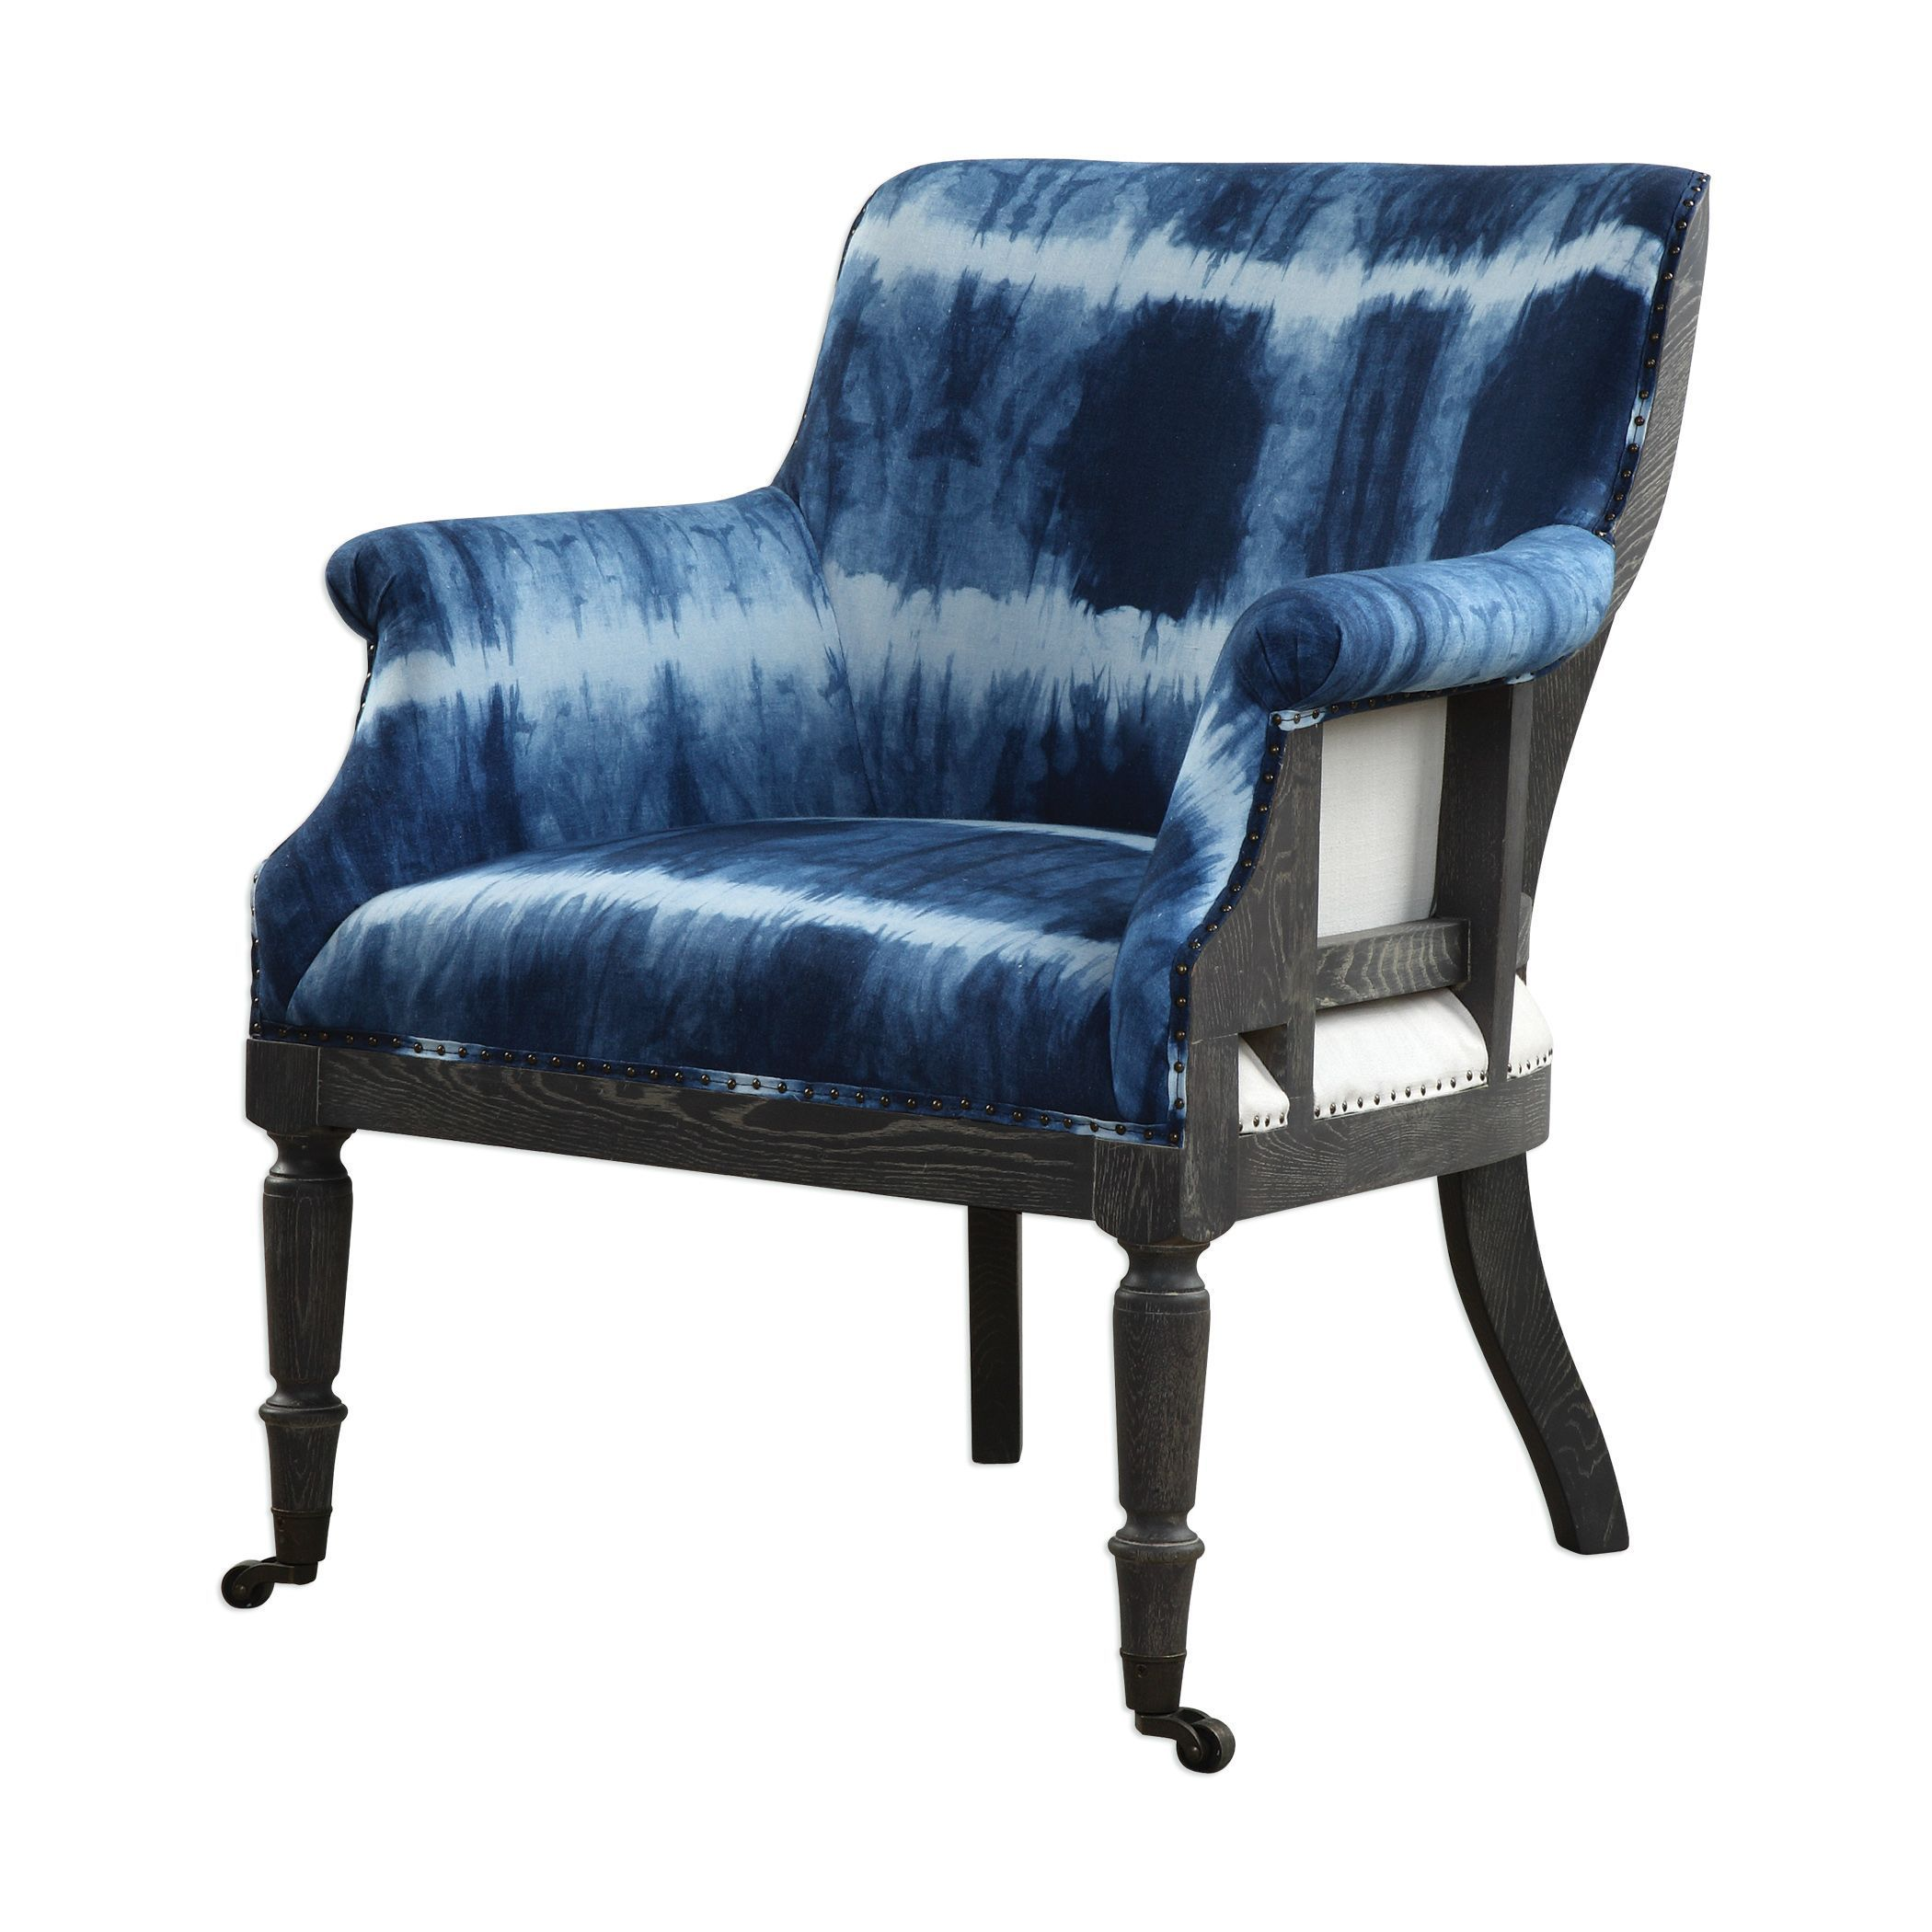 This Unique Accent Chair Will Add A Vibrant Touch To Your Decor. Royal  Cobalt Blue